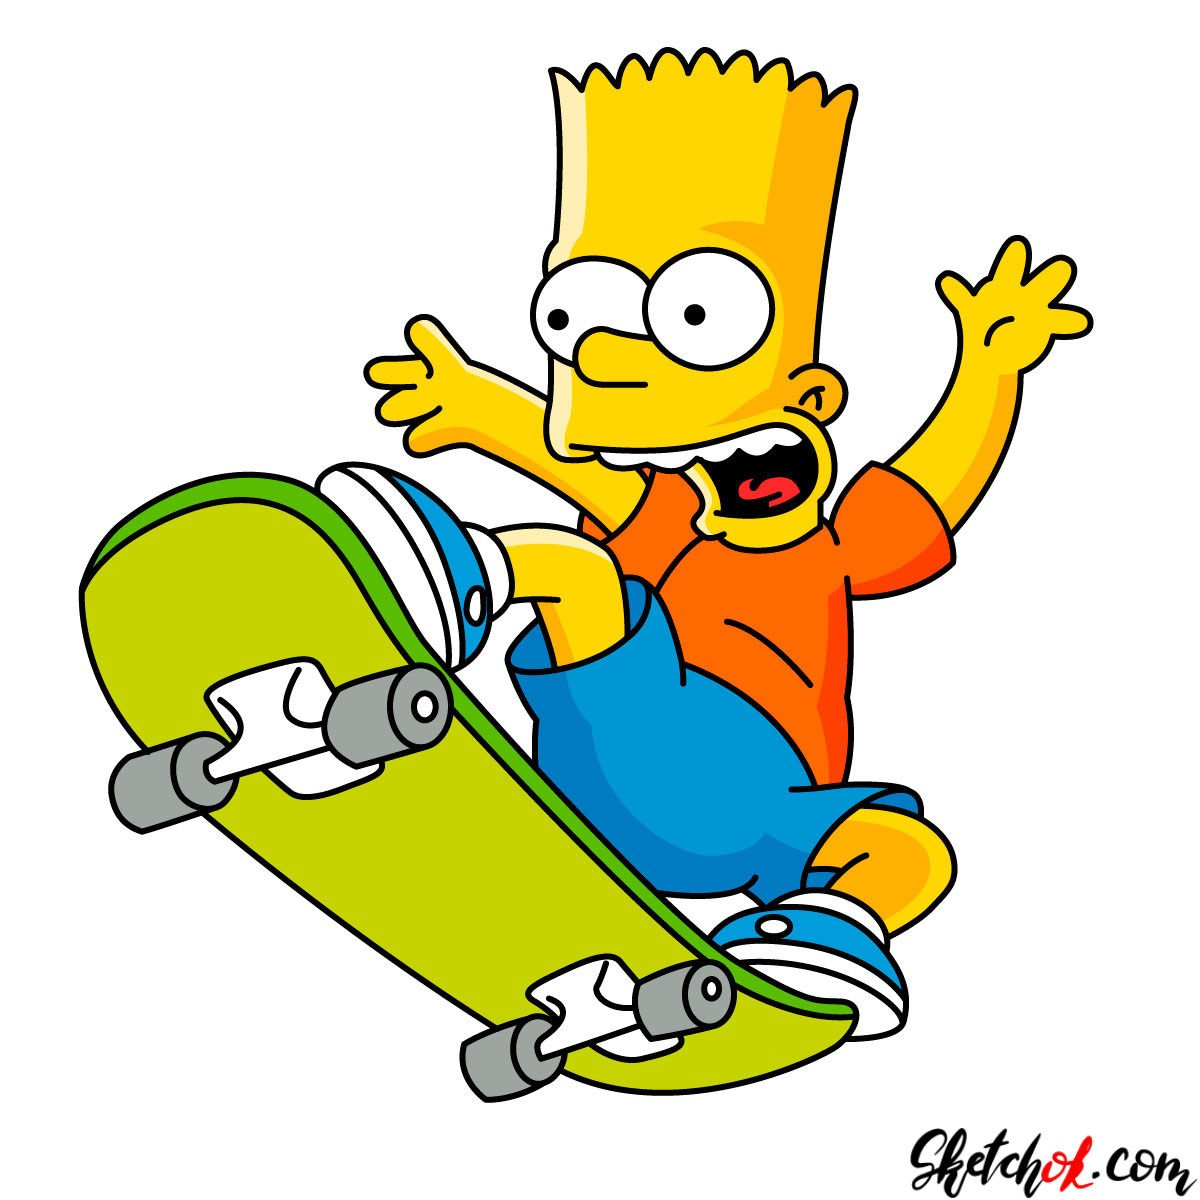 How to draw Bart Simpson on a skateboard